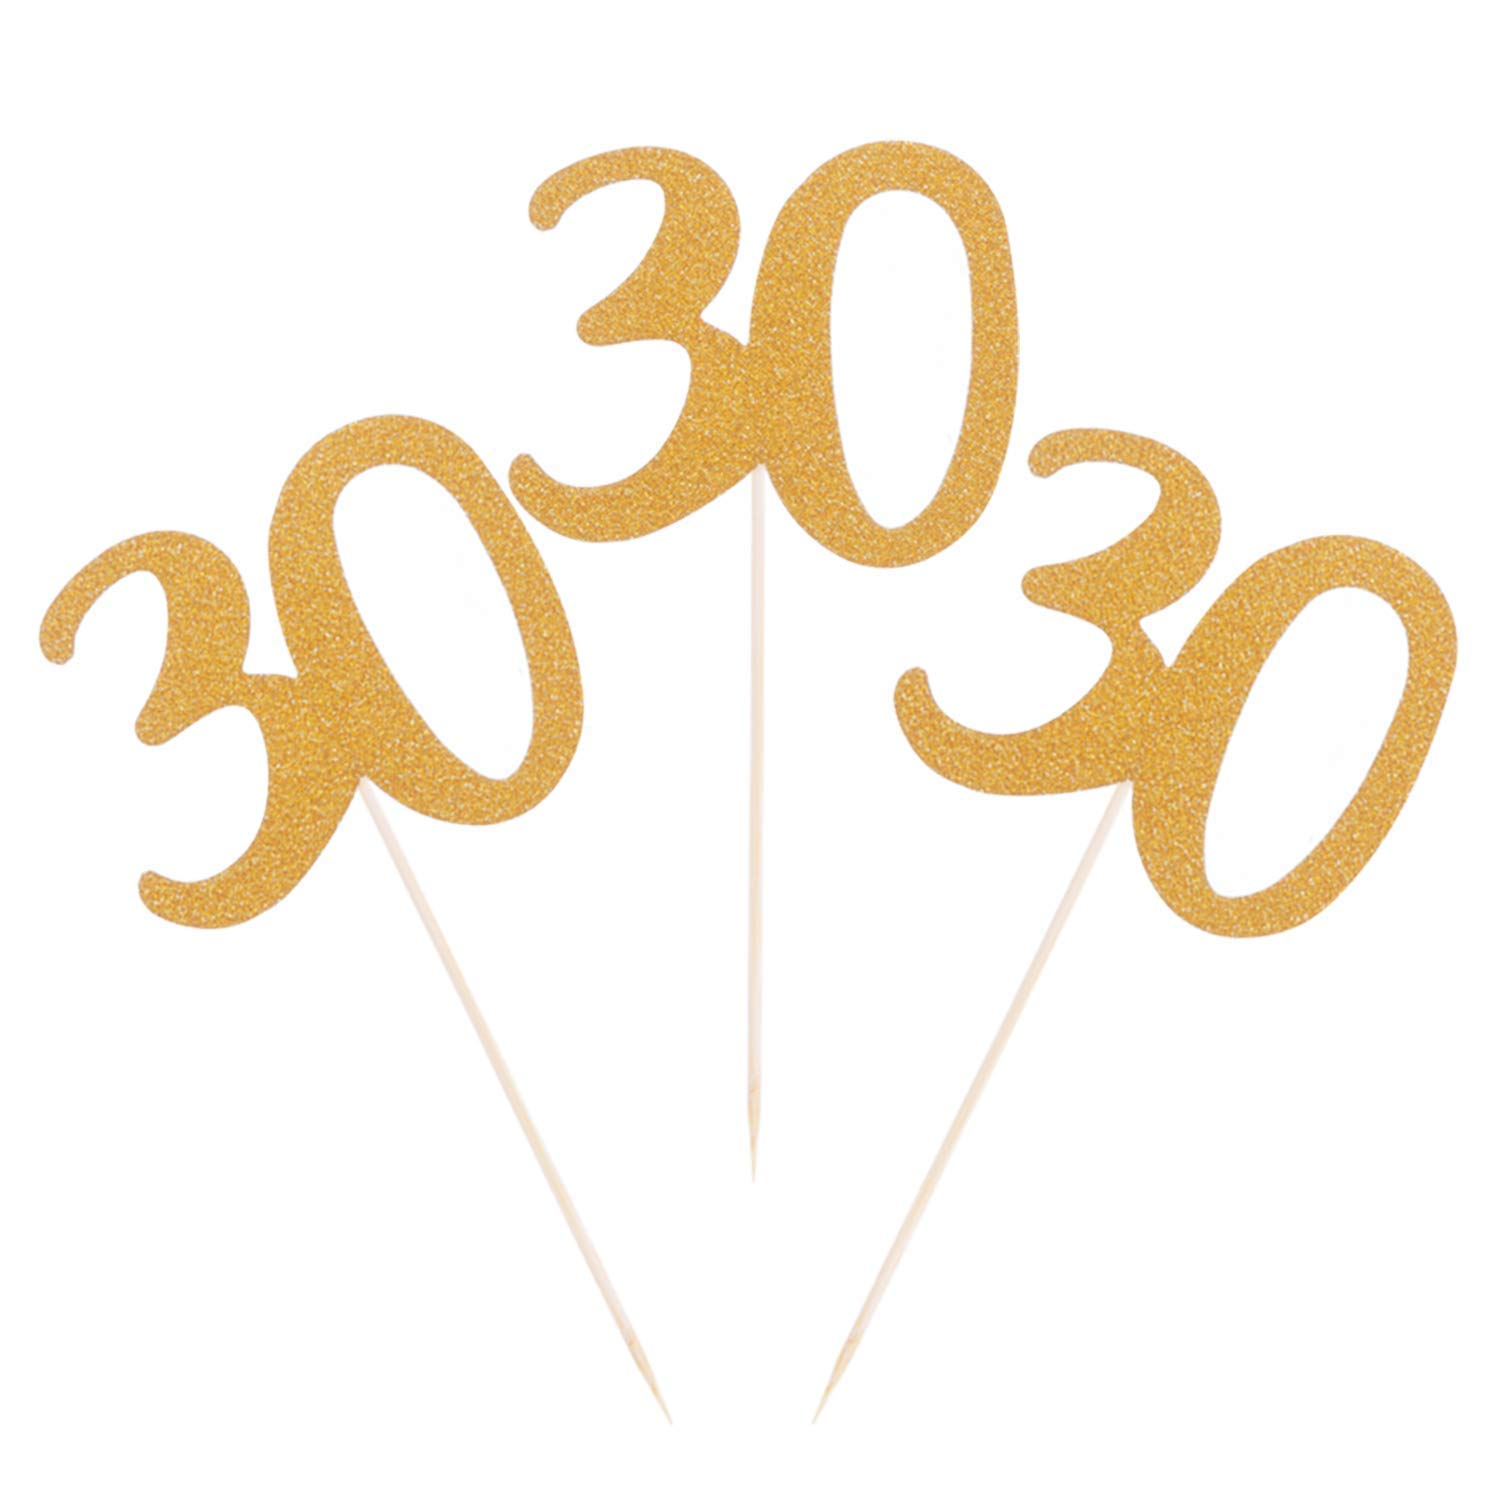 Get Quotations Donoter 50 Pcs 30th Birthday Cupcake Toppers Number 30 Gold Glitter Cake Picks For Anniversary Party